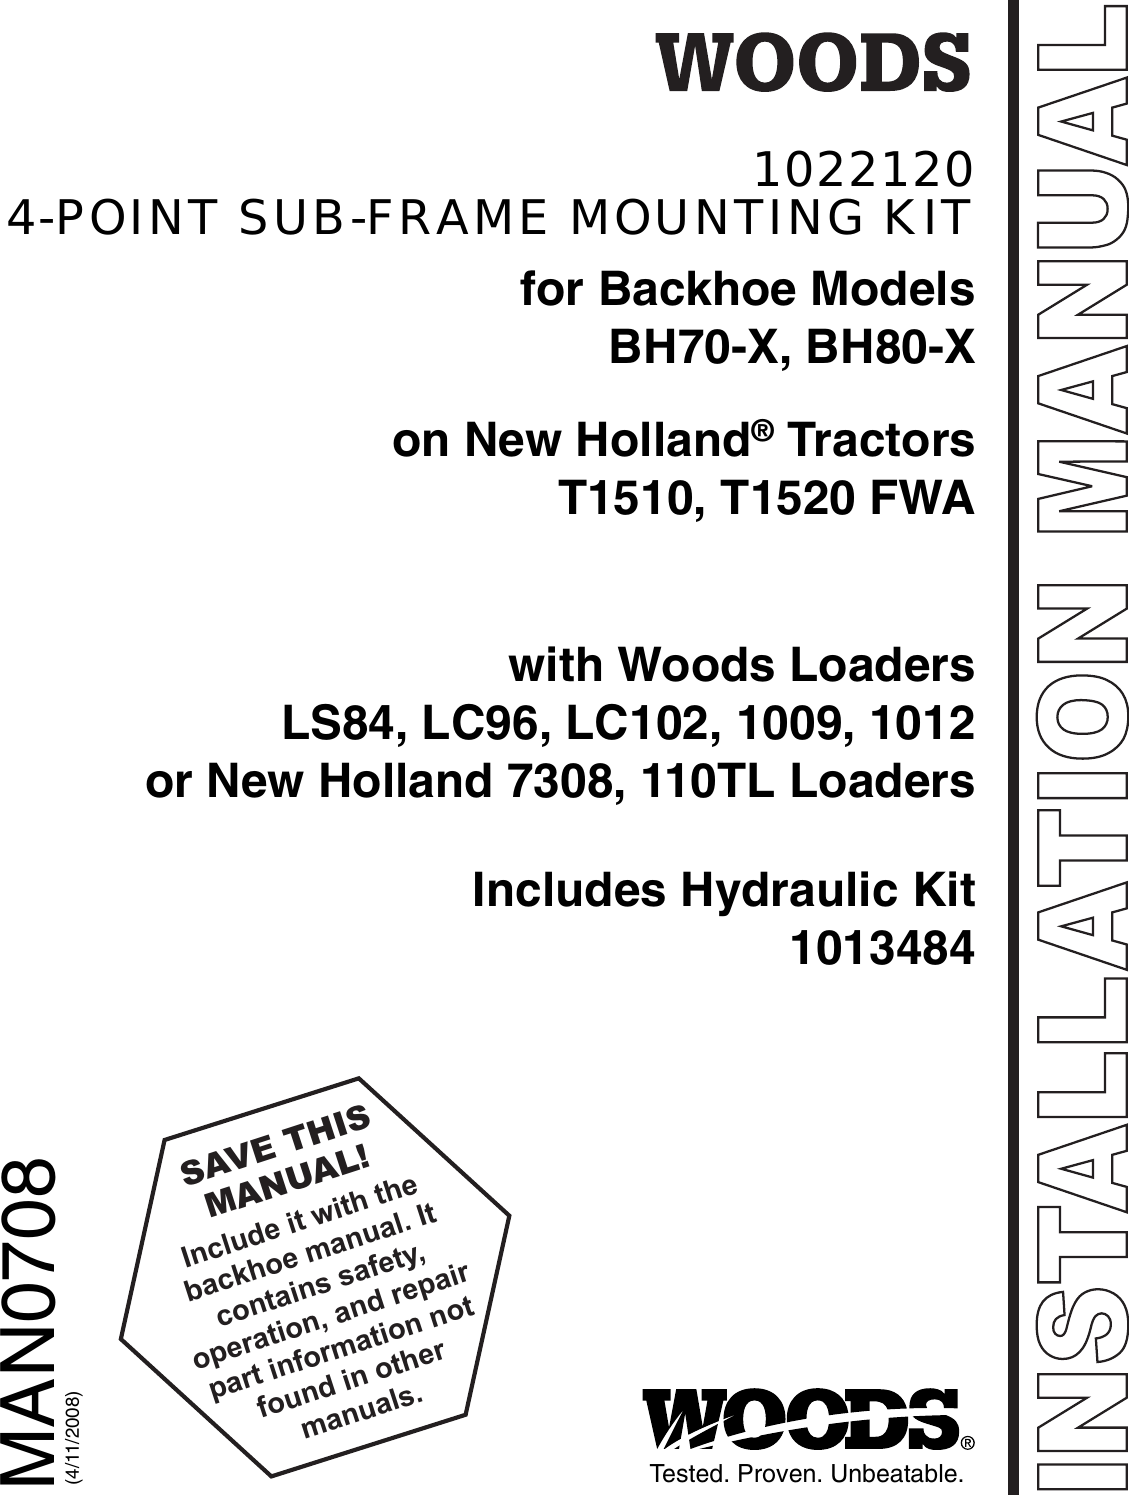 Woods Equipment 1022120 Users Manual Sub Frame Mounting Kit (BH70 X on